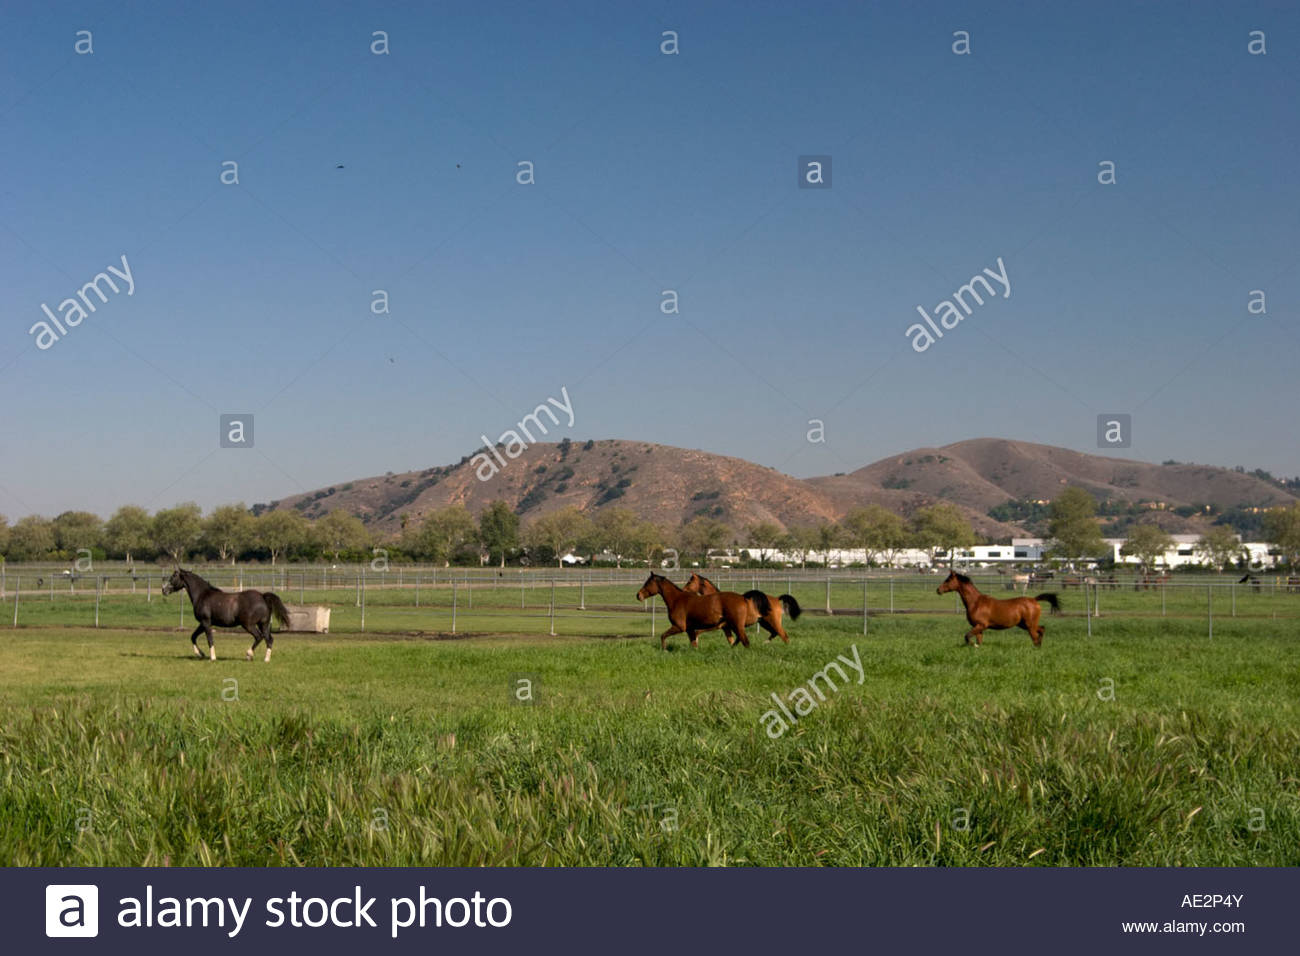 Poly Stock Photos & Poly Stock Images - Alamy